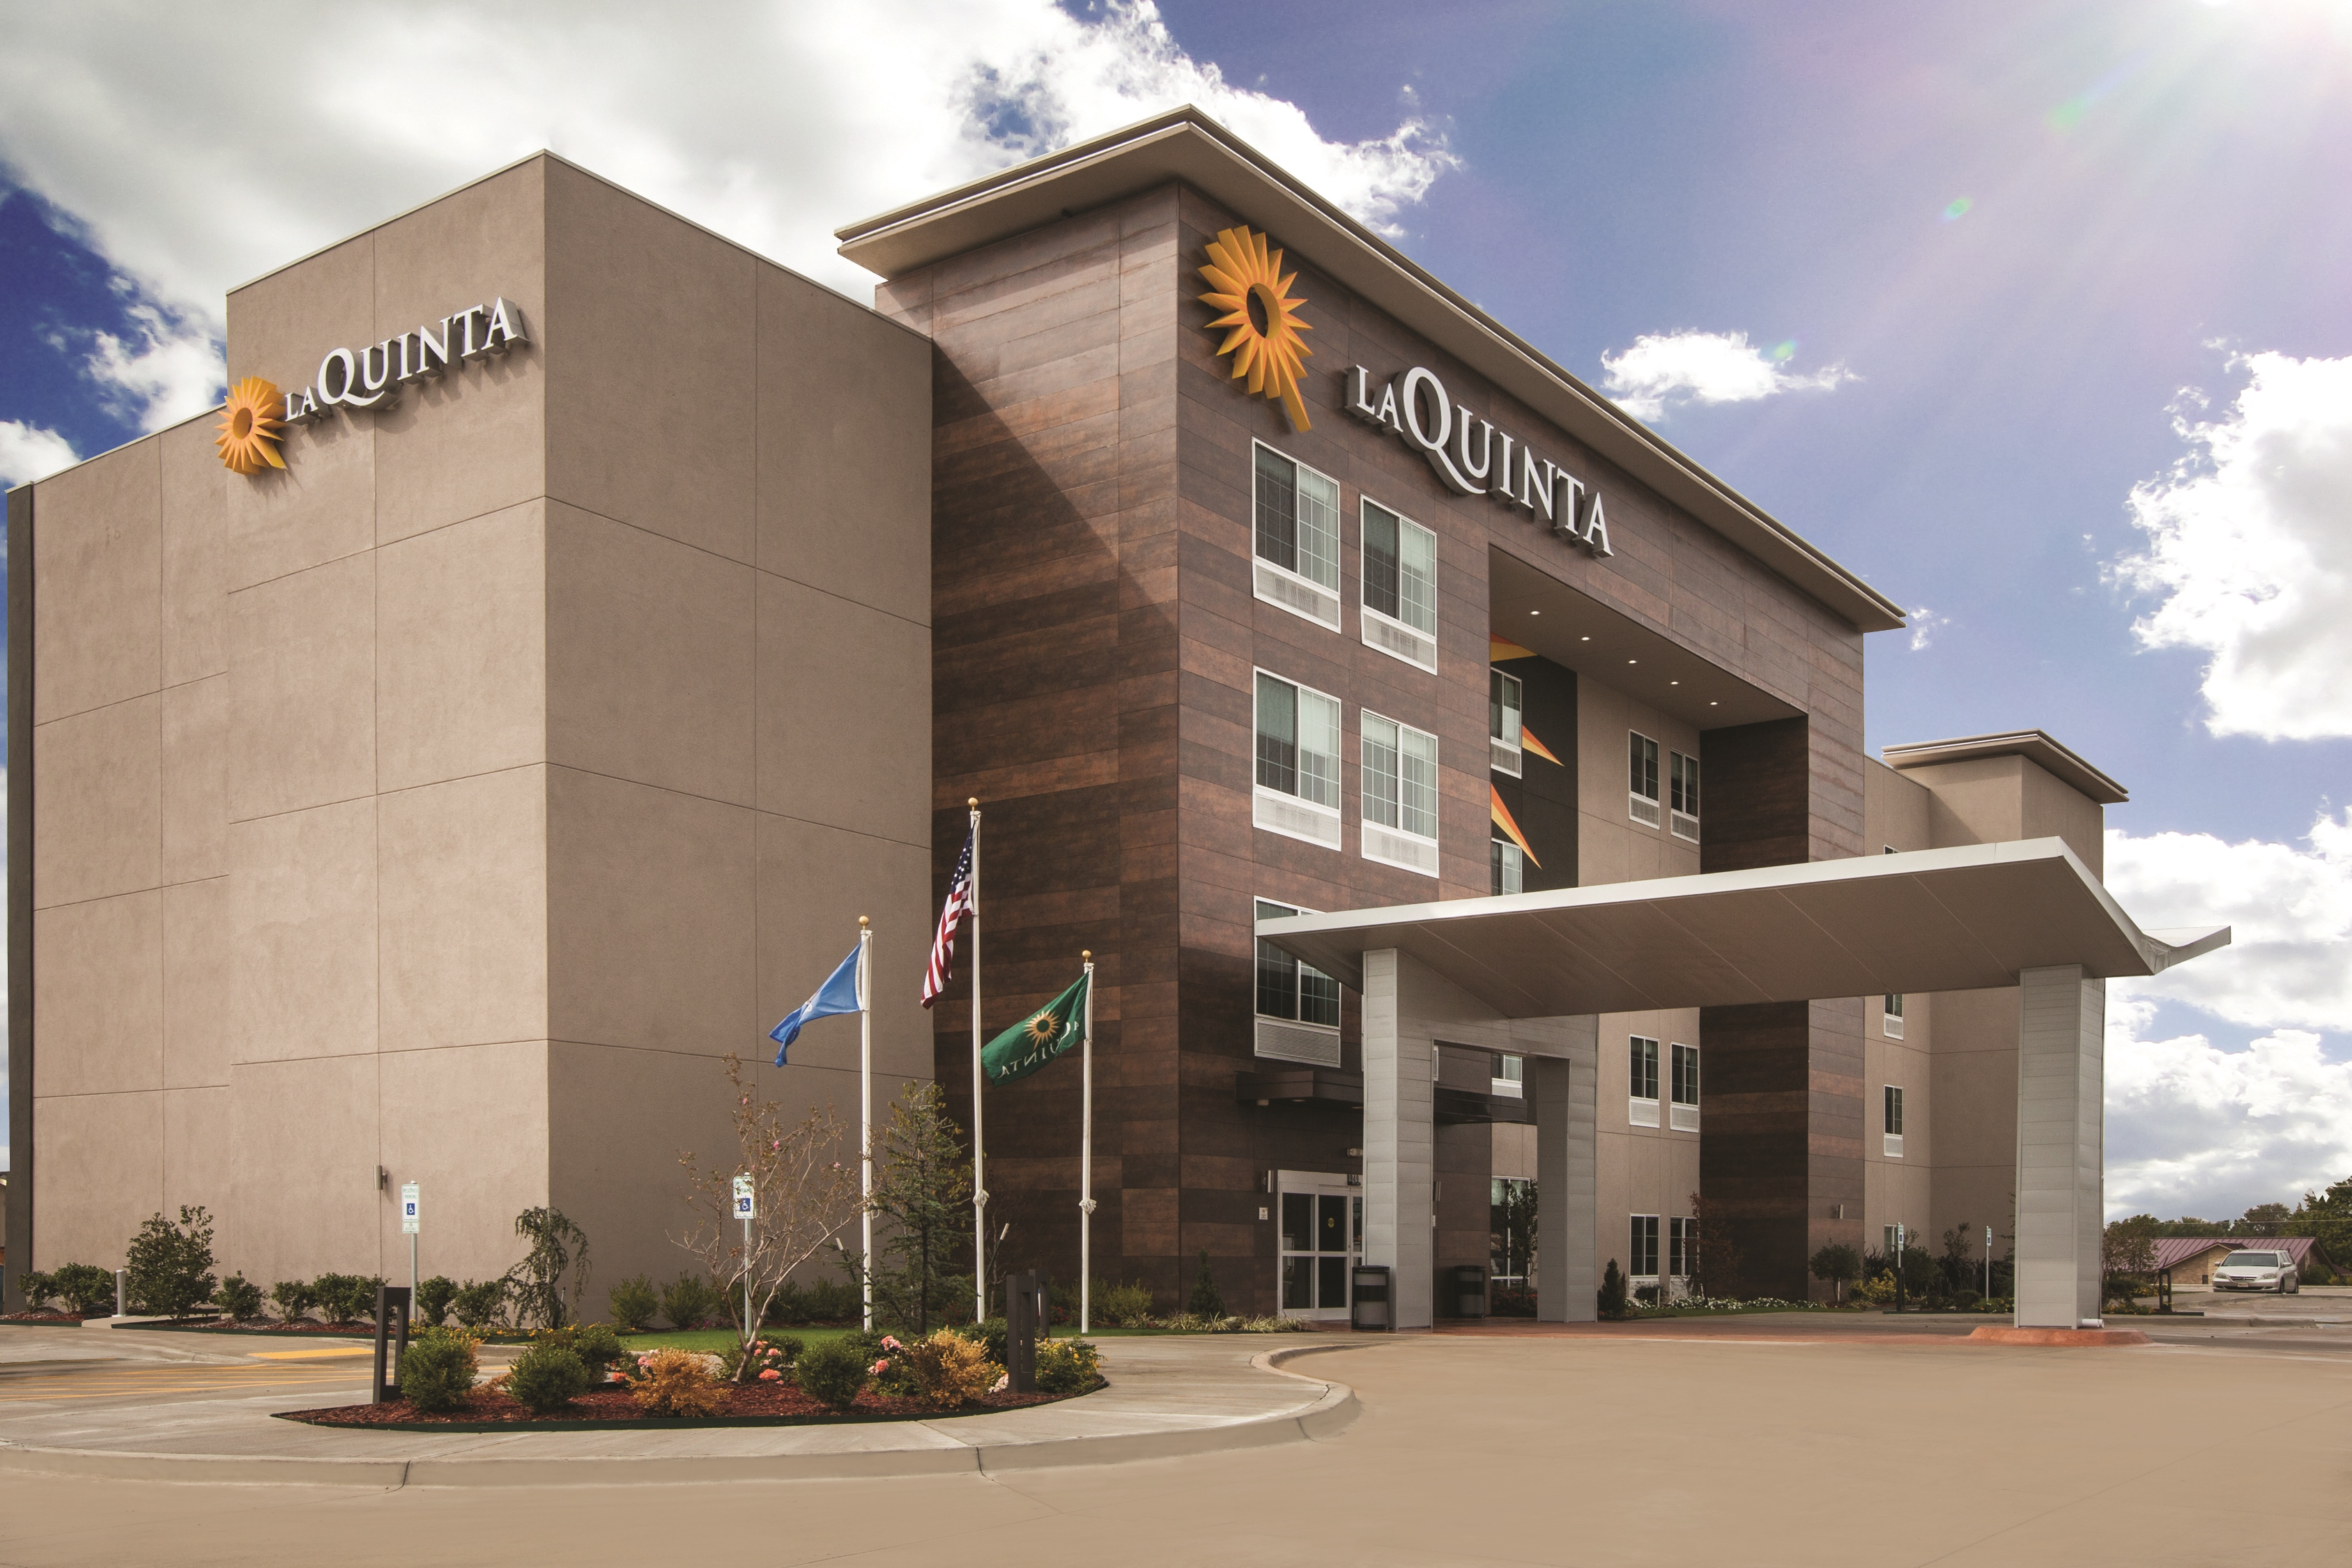 La Quinta By Wyndham Continues Momentum With Seven New